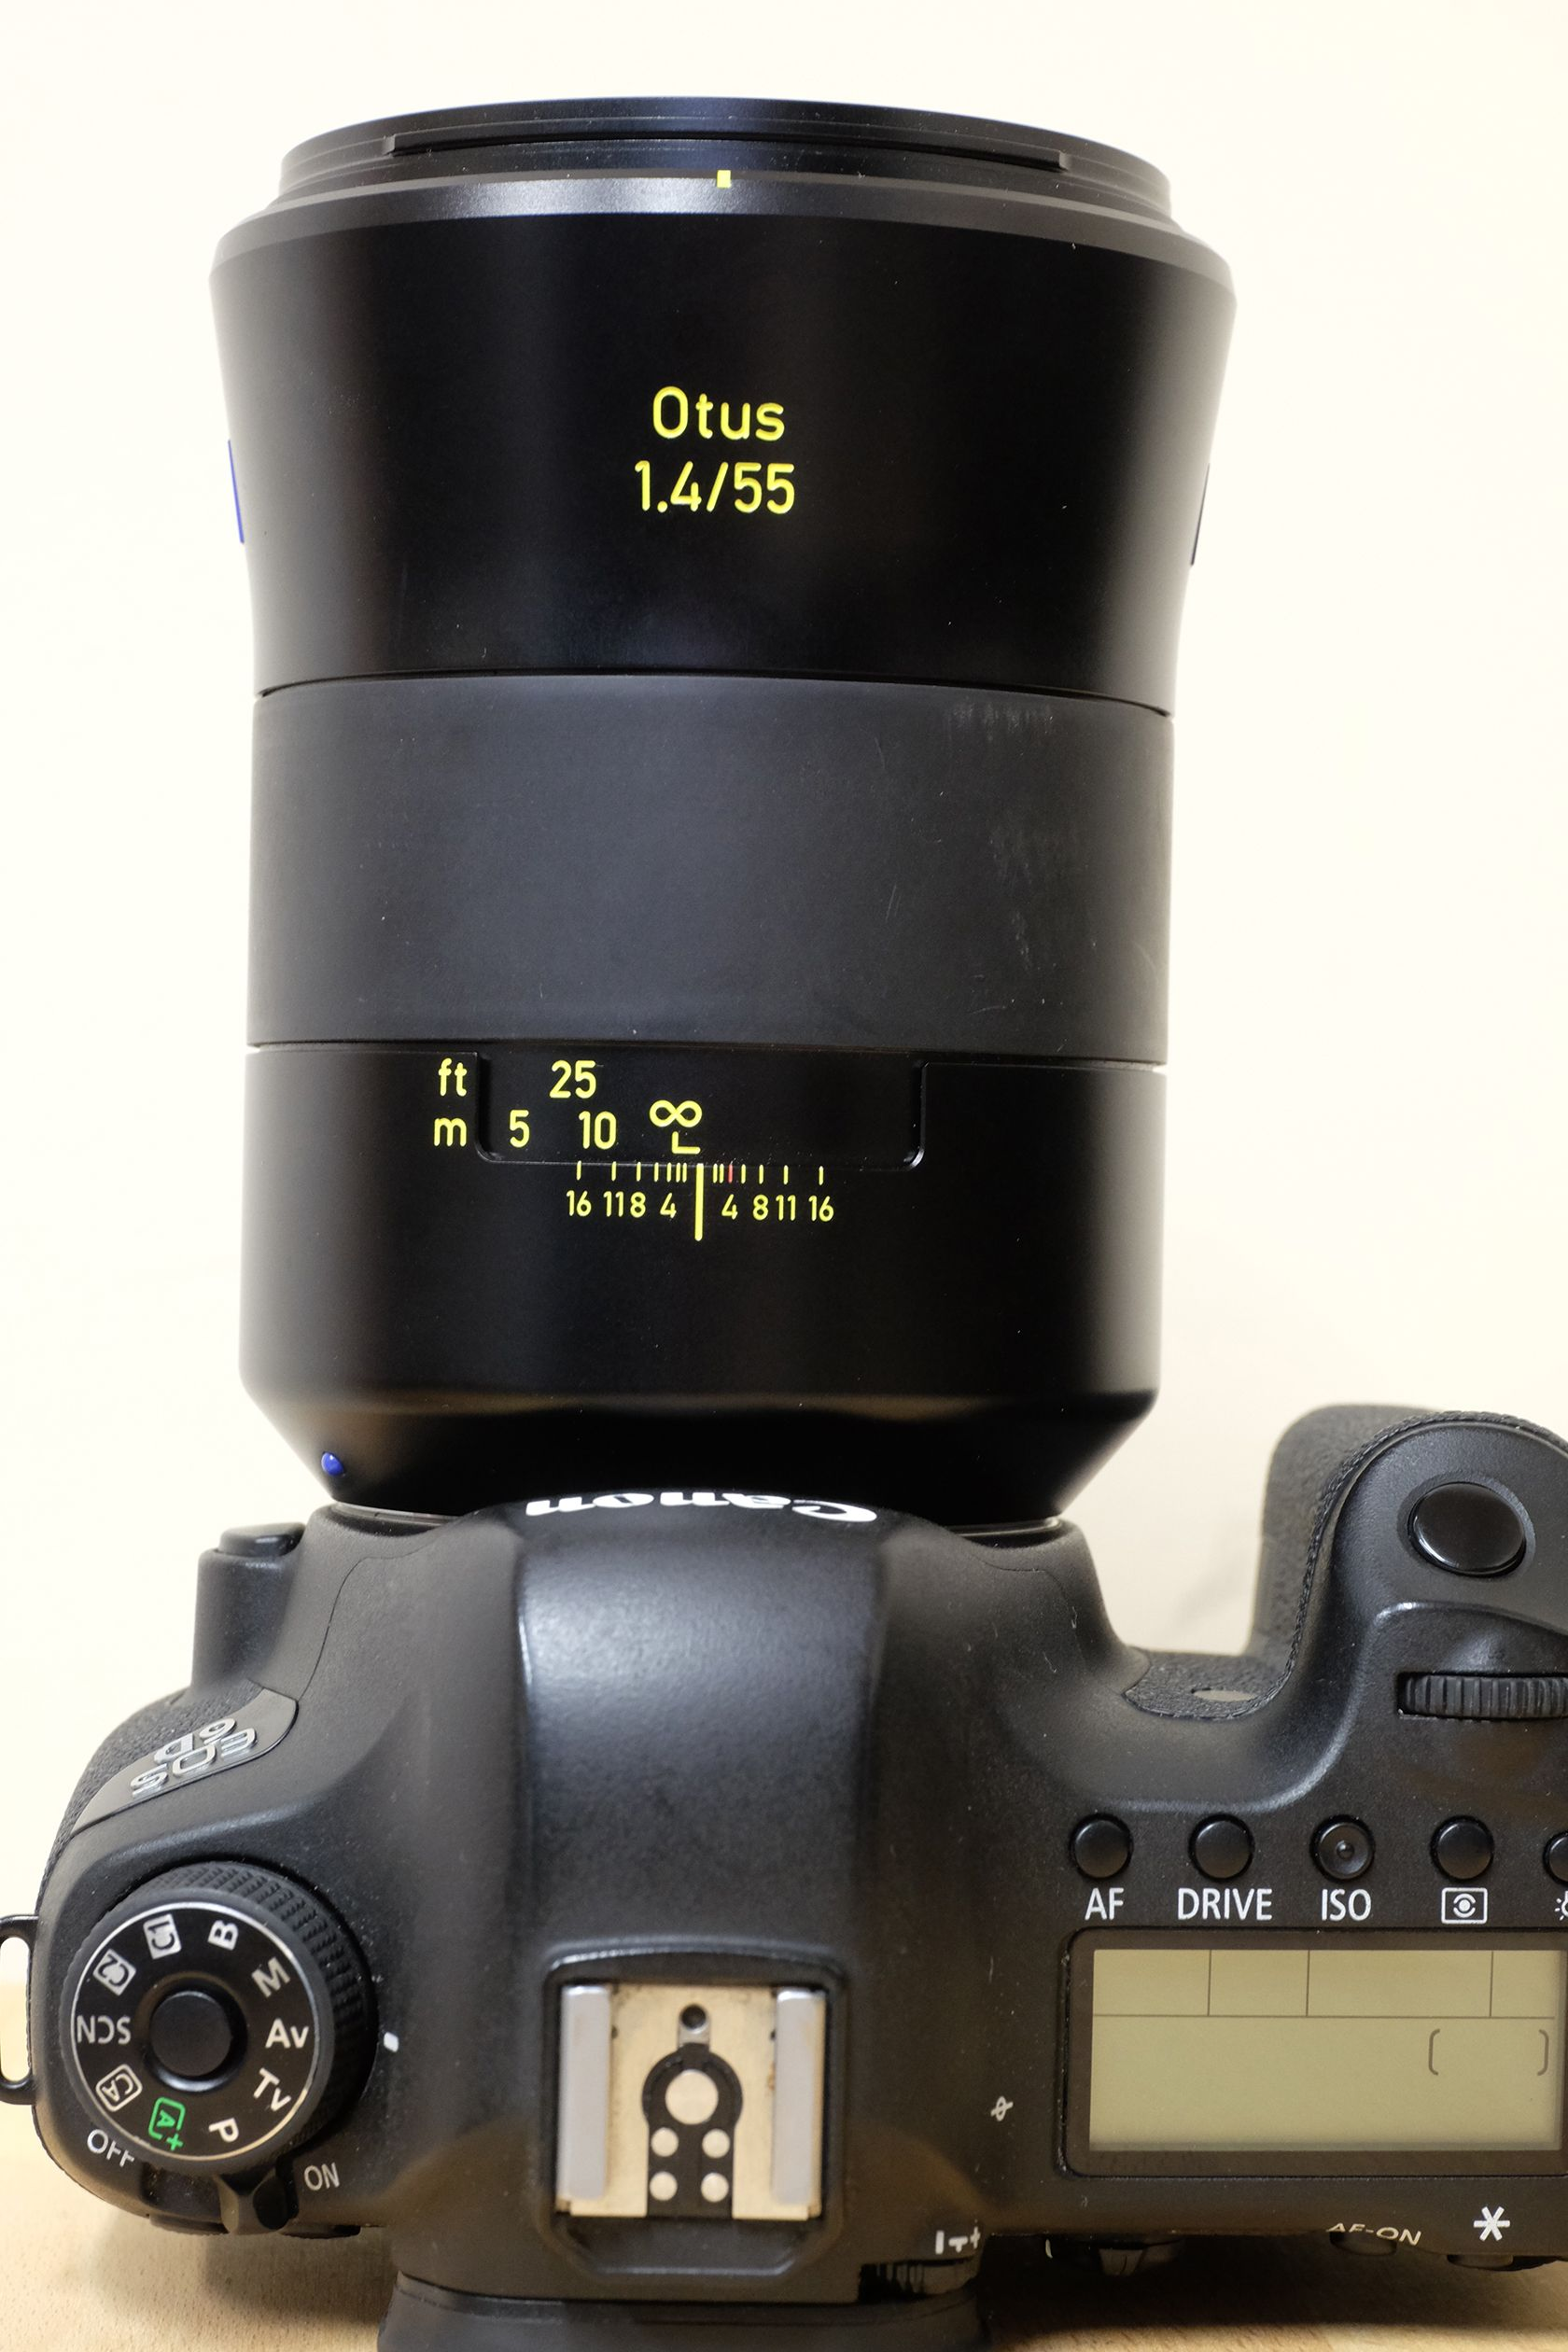 Getting the best from a High Resolution camera - lenses